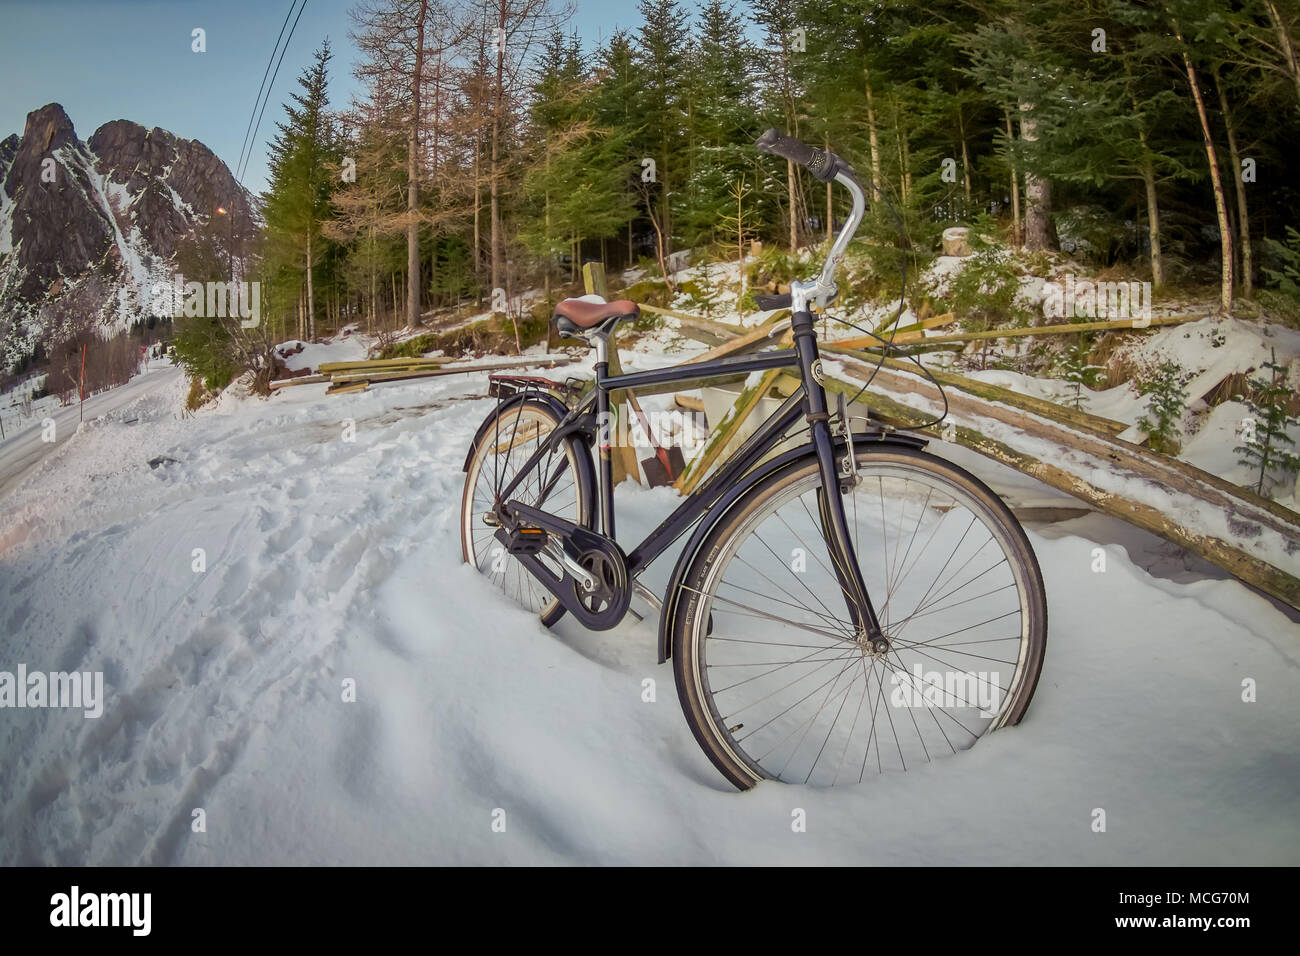 SVOLVAER, LOFOTEN ISLANDS, NORWAY - APRIL 10, 2018: Outdoor view of old-rusty-abandoned bycicles in the snow waiting for the summer to come and be reutilized in Norway - Stock Image